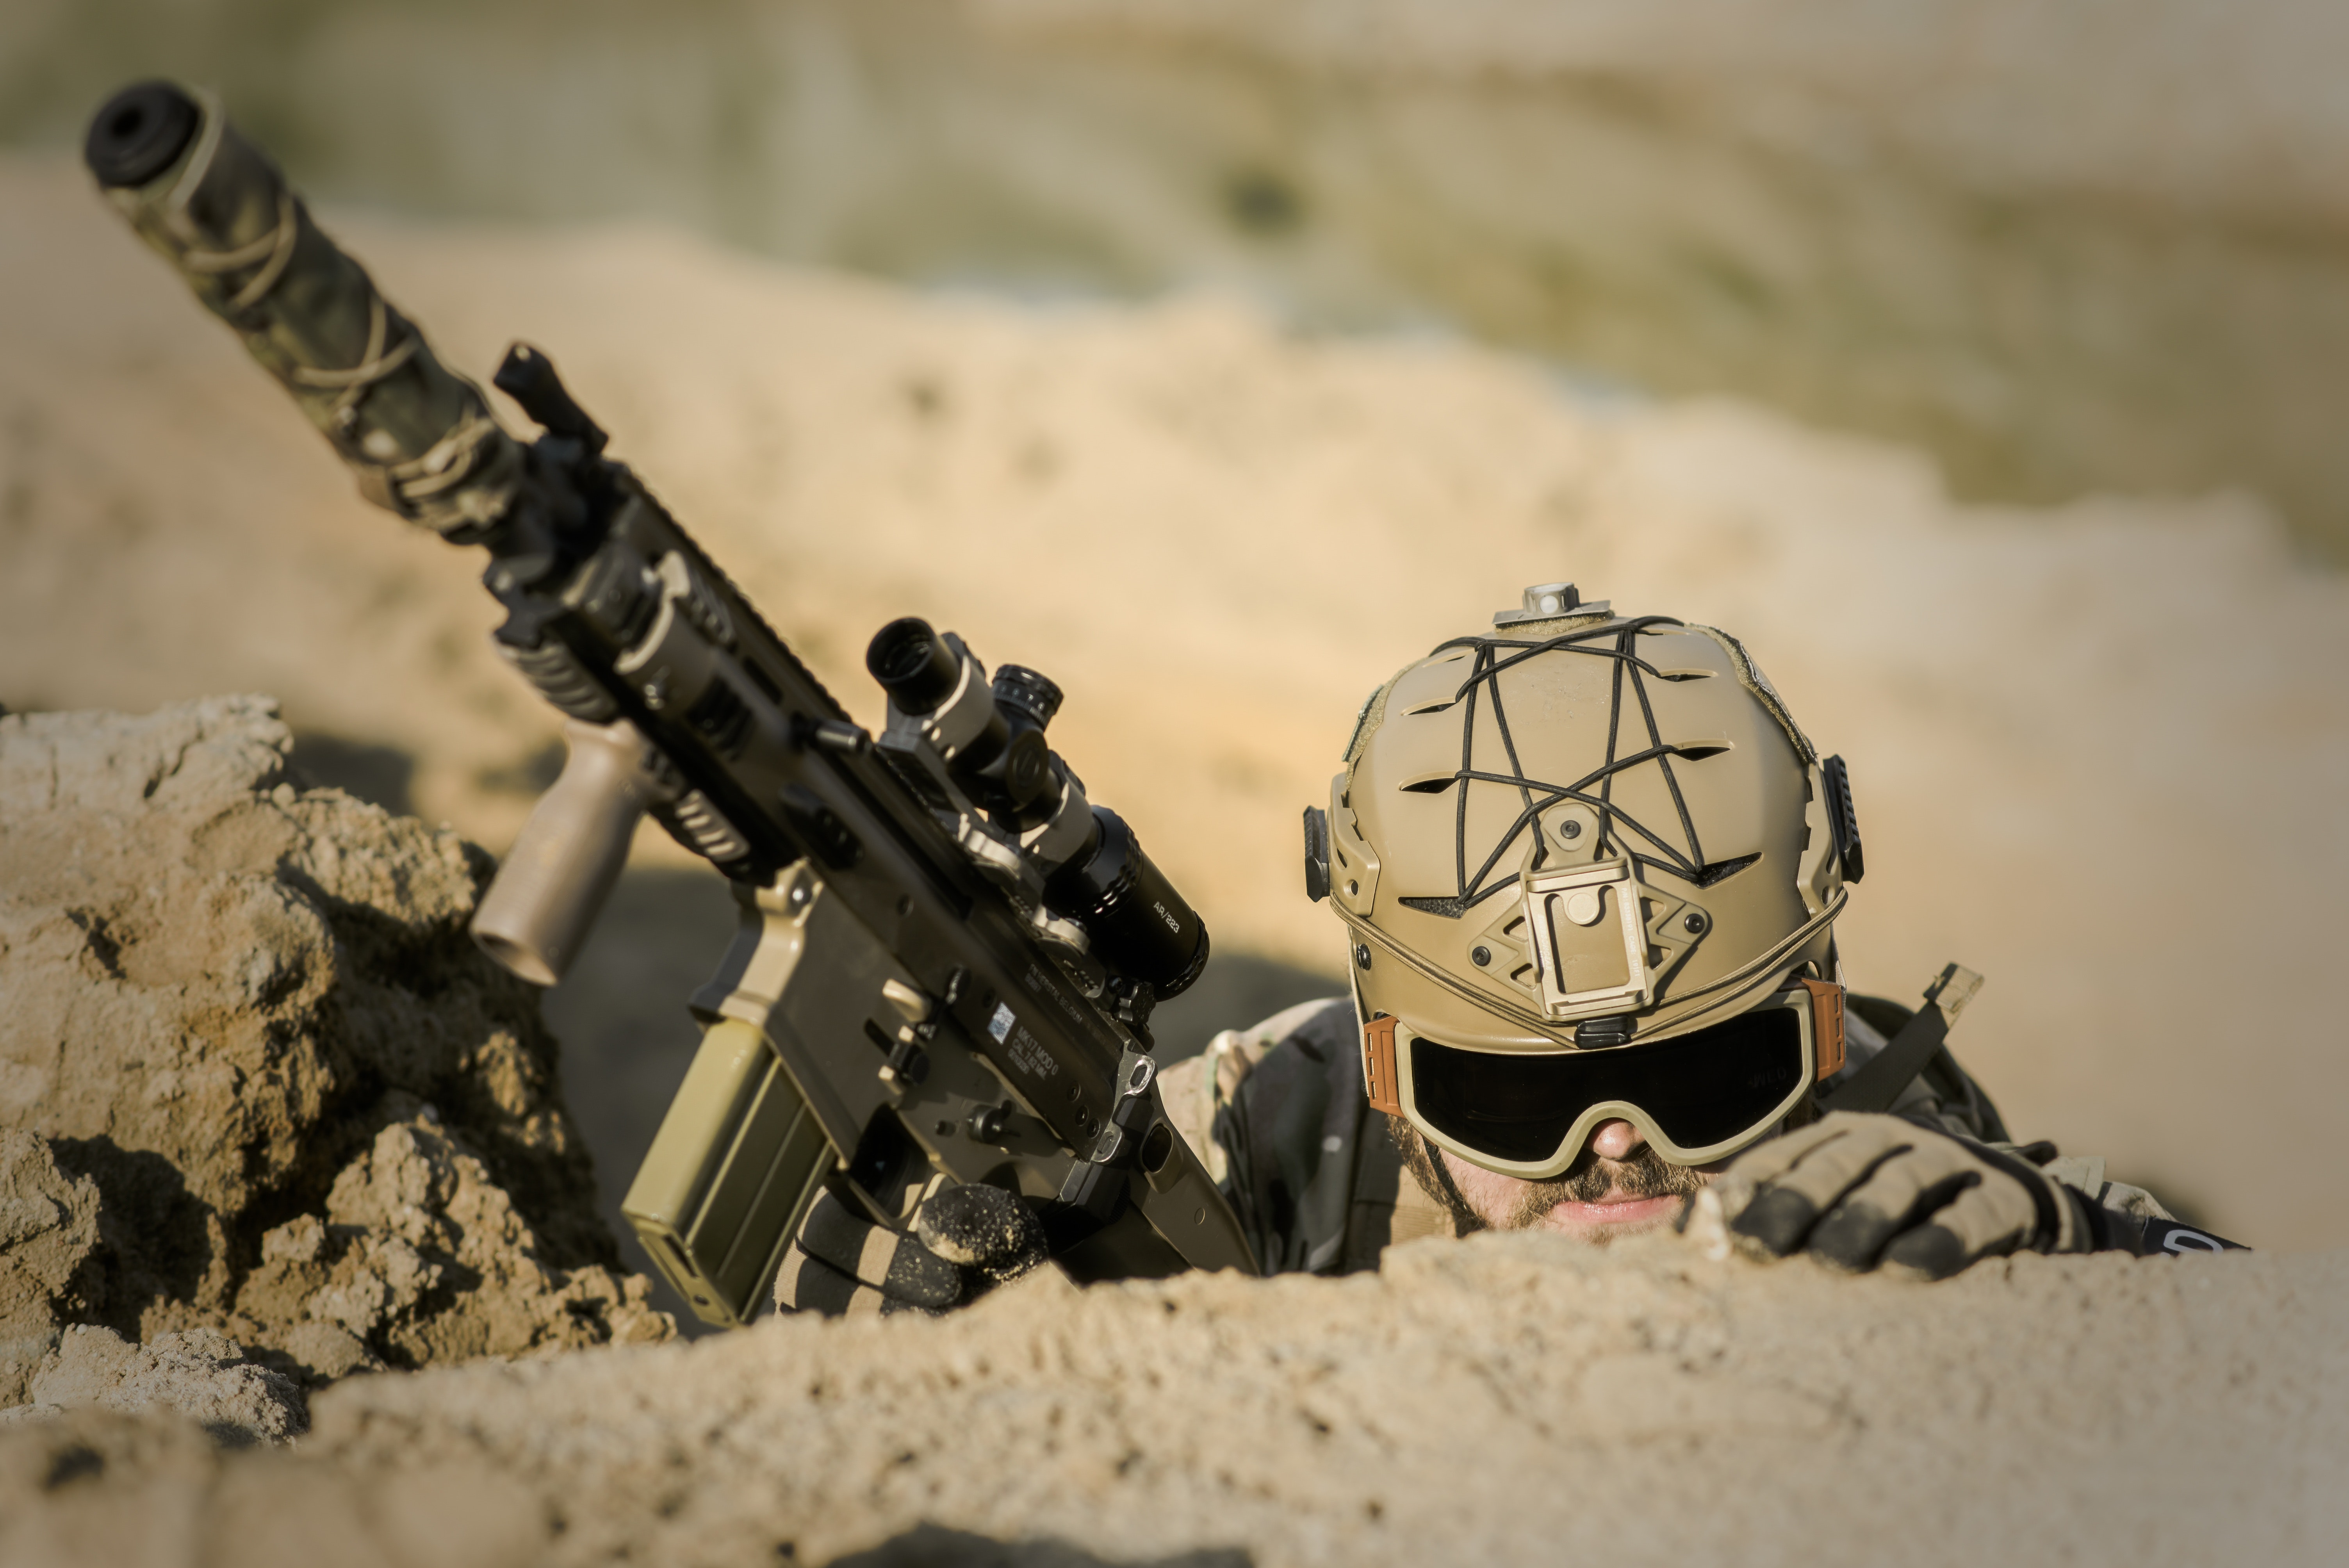 a soldier hiding and holding up a firearm with scope